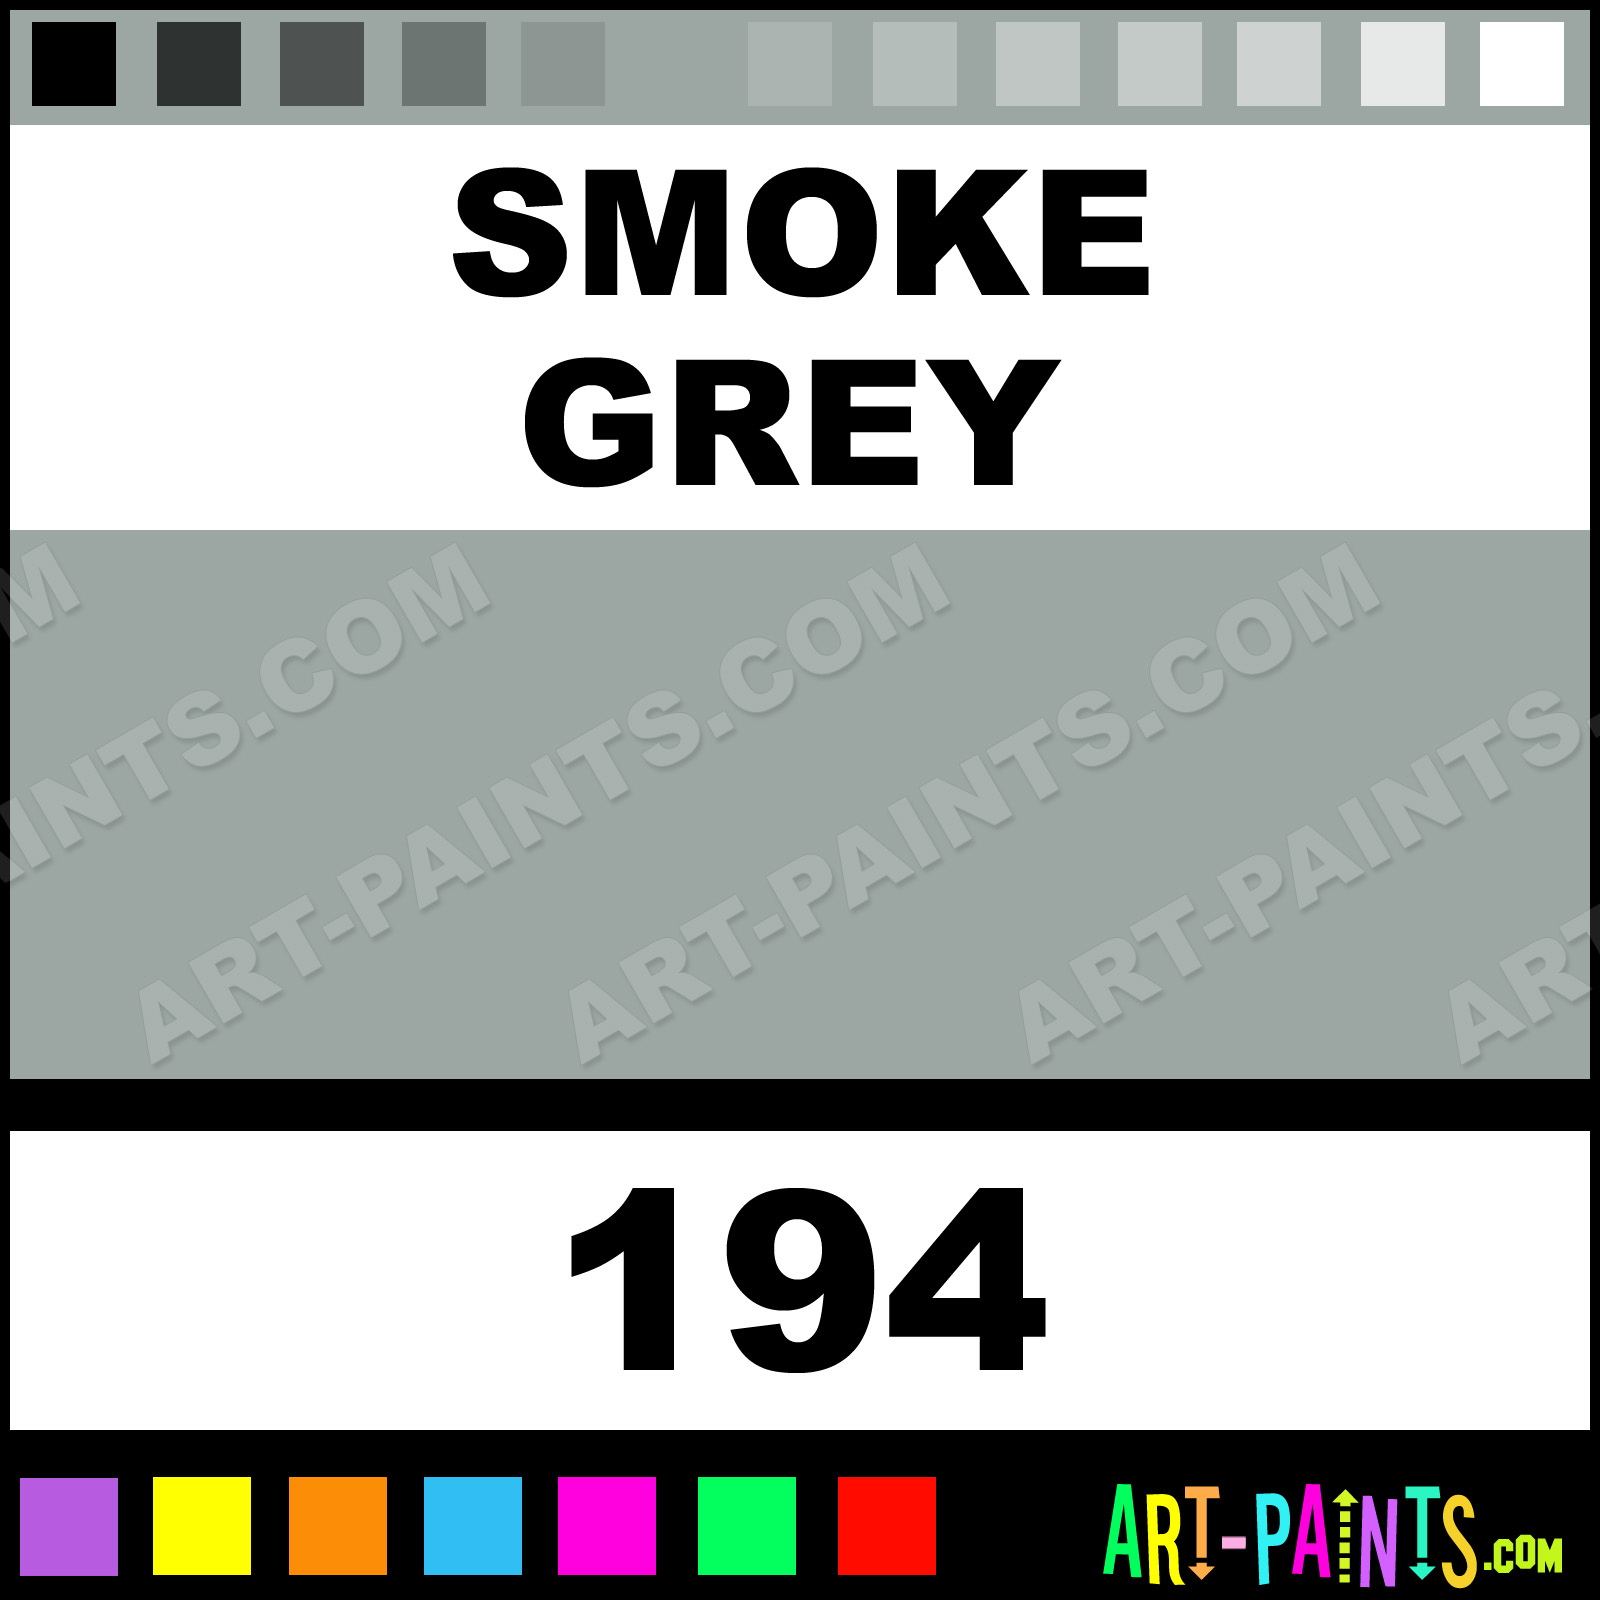 Smoke grey fast dry enamel paints 194 smoke grey paint for Fast drying craft paint